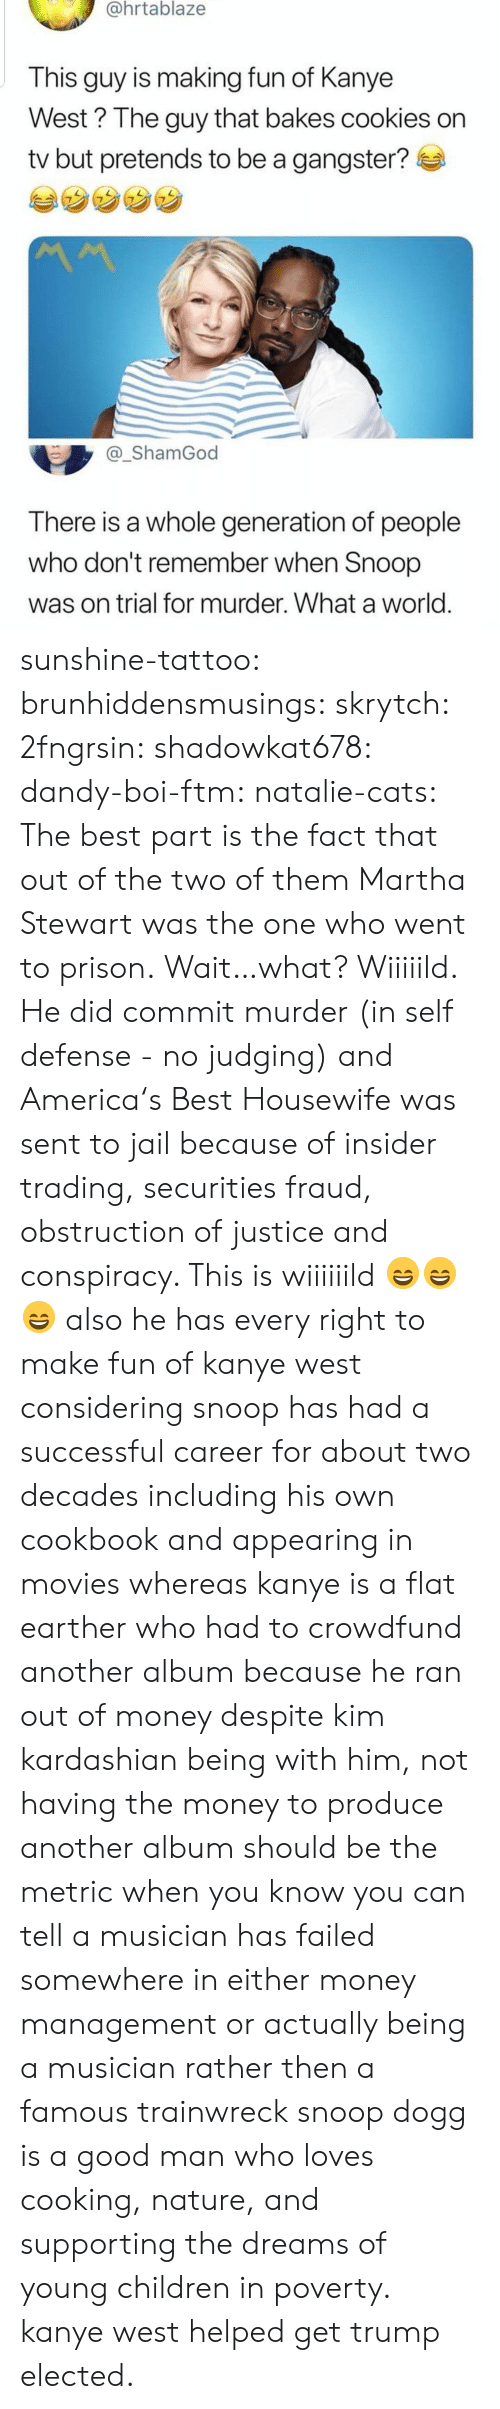 America, Cats, and Children: @hrtablaze  This guy is making fun of Kanye  West? The guy that bakes cookies on  tv but pretends to be a gangster?  _ShamGod  There is a whole generation of people  who don't remember when Snoop  was on trial for murder. What a world sunshine-tattoo: brunhiddensmusings:  skrytch:  2fngrsin:  shadowkat678:  dandy-boi-ftm:   natalie-cats:   The best part is the fact that out of the two of them Martha Stewart was the one who went to prison.   Wait…what?   Wiiiiild. He did commit murder (in self defense - no judging) and America's Best Housewife was sent to jail because of insider trading, securities fraud, obstruction of justice and conspiracy. This is wiiiiiild 😄😄😄    also he has every right to make fun of kanye west considering snoop has had a successful career for about two decades including his own cookbook and appearing in movies whereas kanye is a flat earther who had to crowdfund another album because he ran out of money despite kim kardashian being with him, not having the money to produce another album should be the metric when you know you can tell a musician has failed somewhere in either money management or actually being a musician rather then a famous trainwreck   snoop dogg is a good man who loves cooking, nature, and supporting the dreams of young children in poverty. kanye west helped get trump elected.